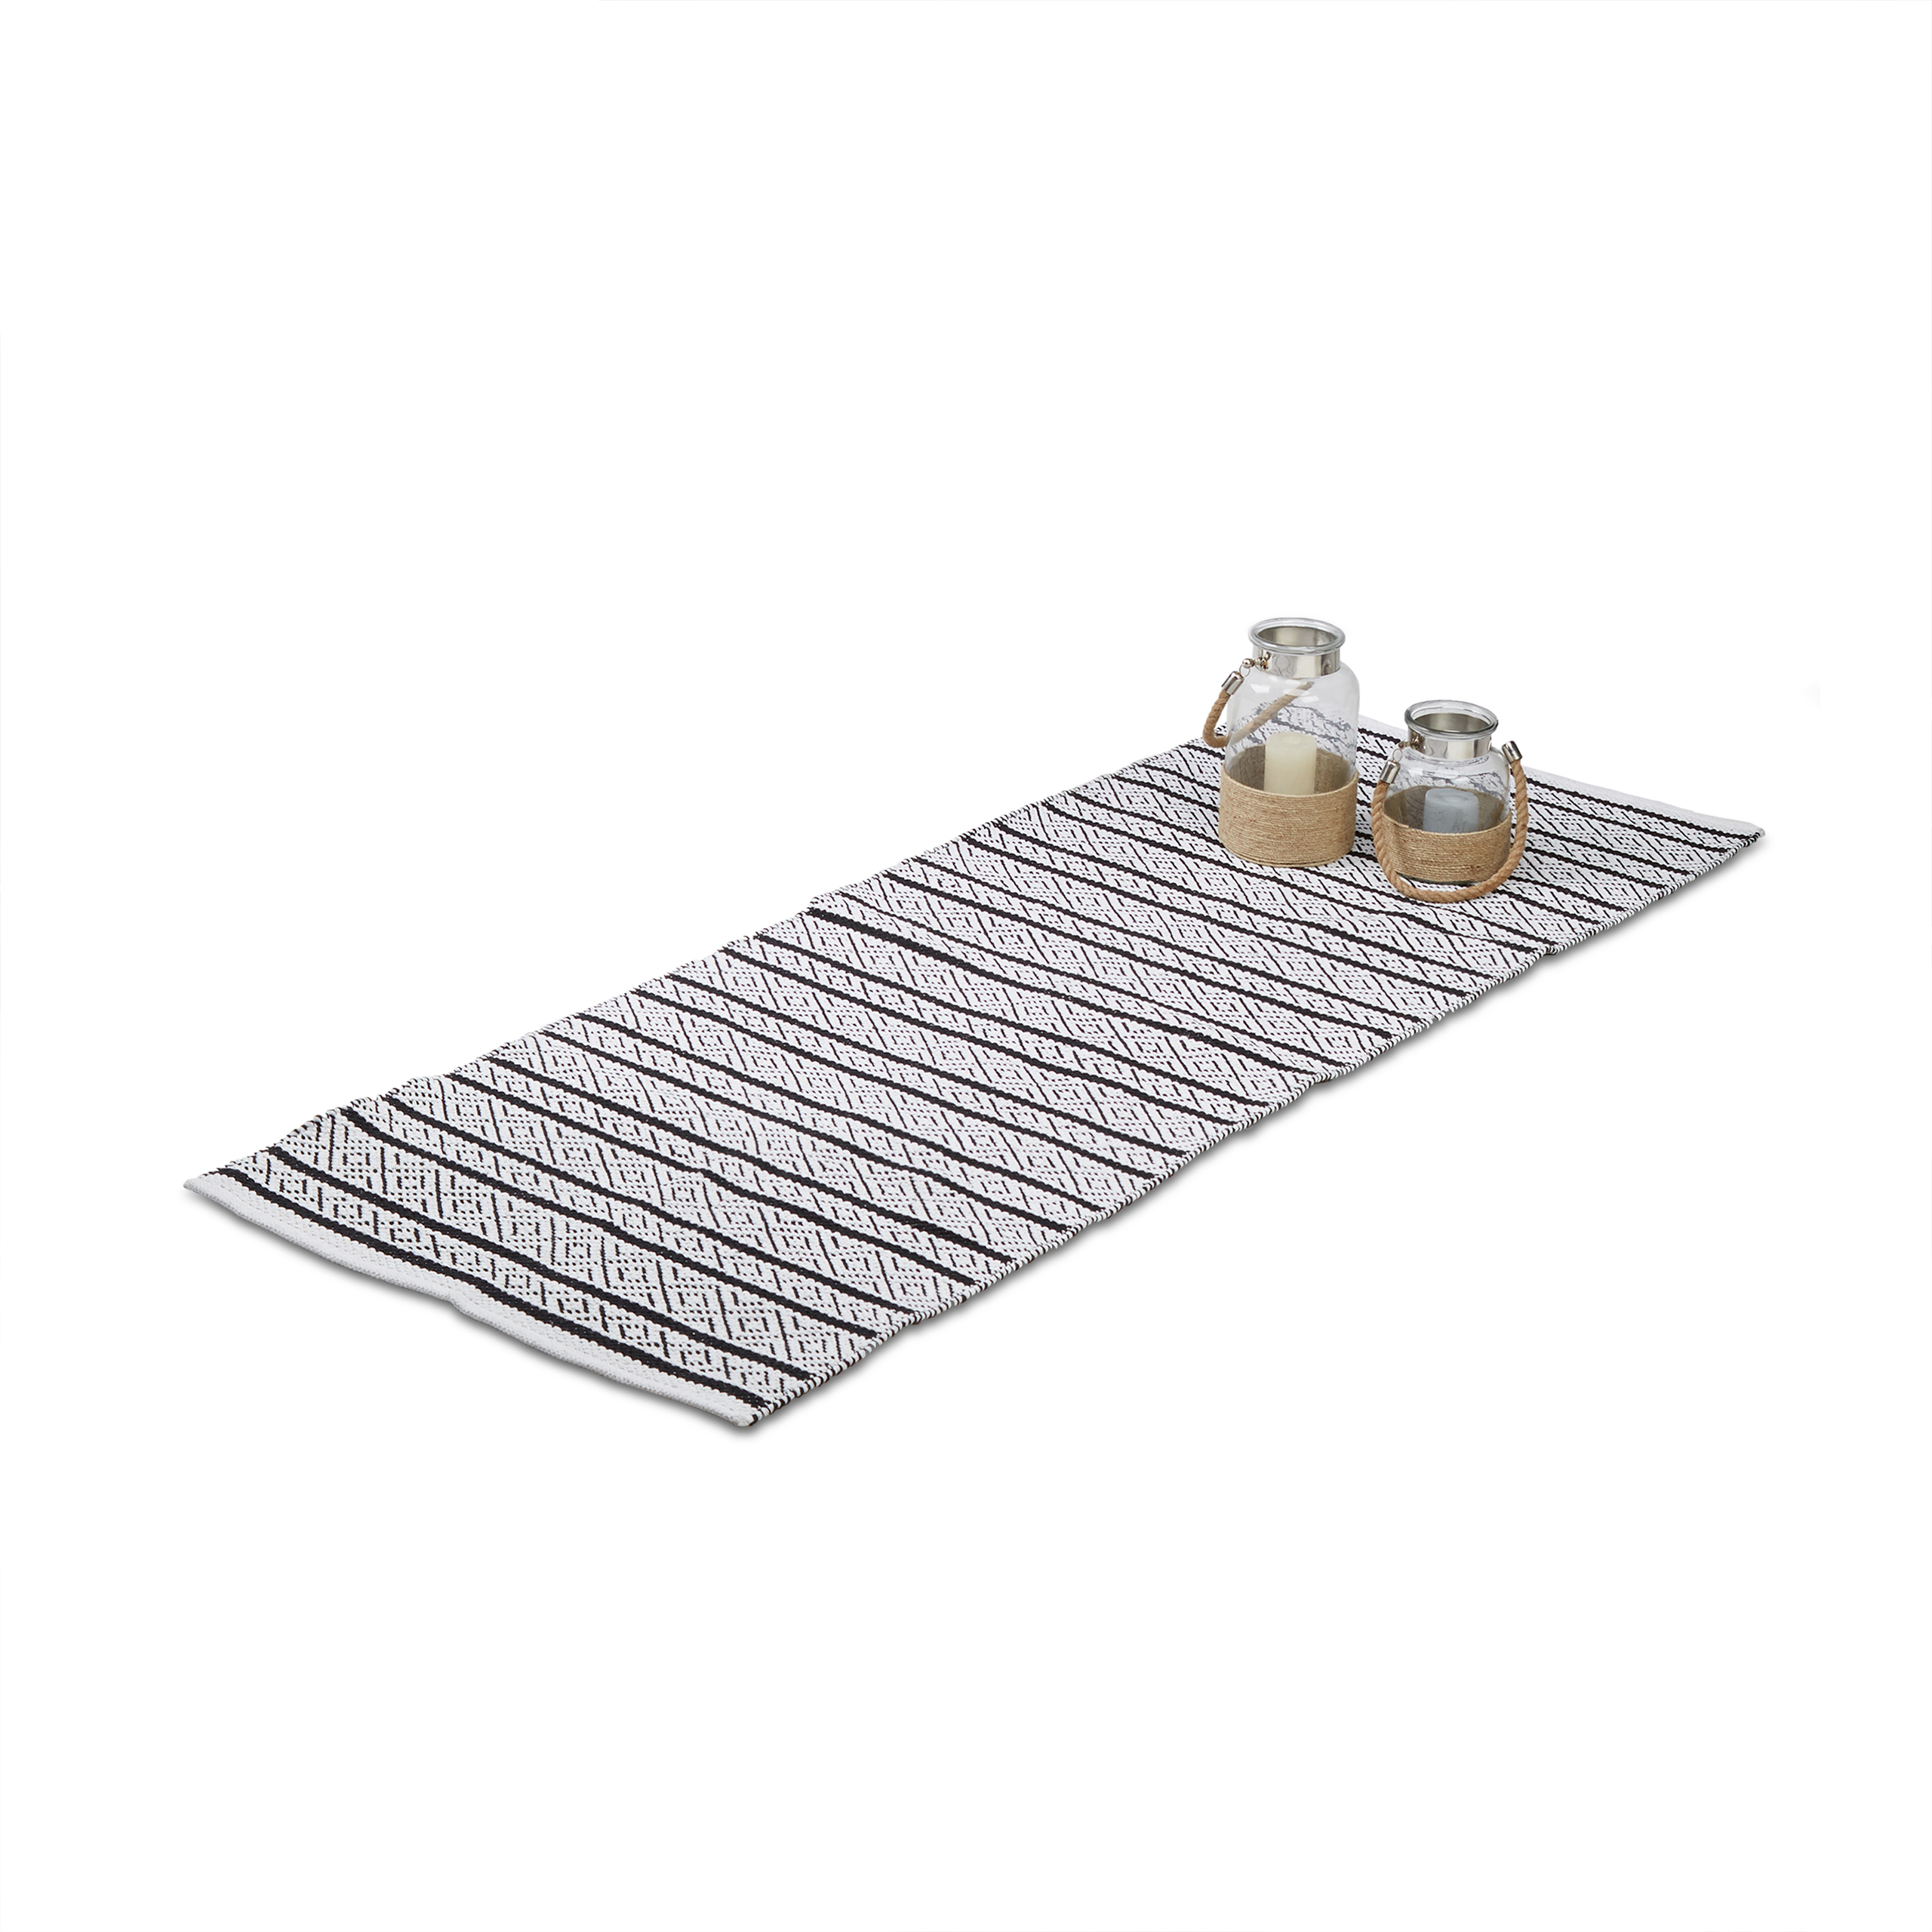 Hallway-Runner-80x200-or-70x140cm-Rug-Black-White-Hand-Woven-Mat-Cotton